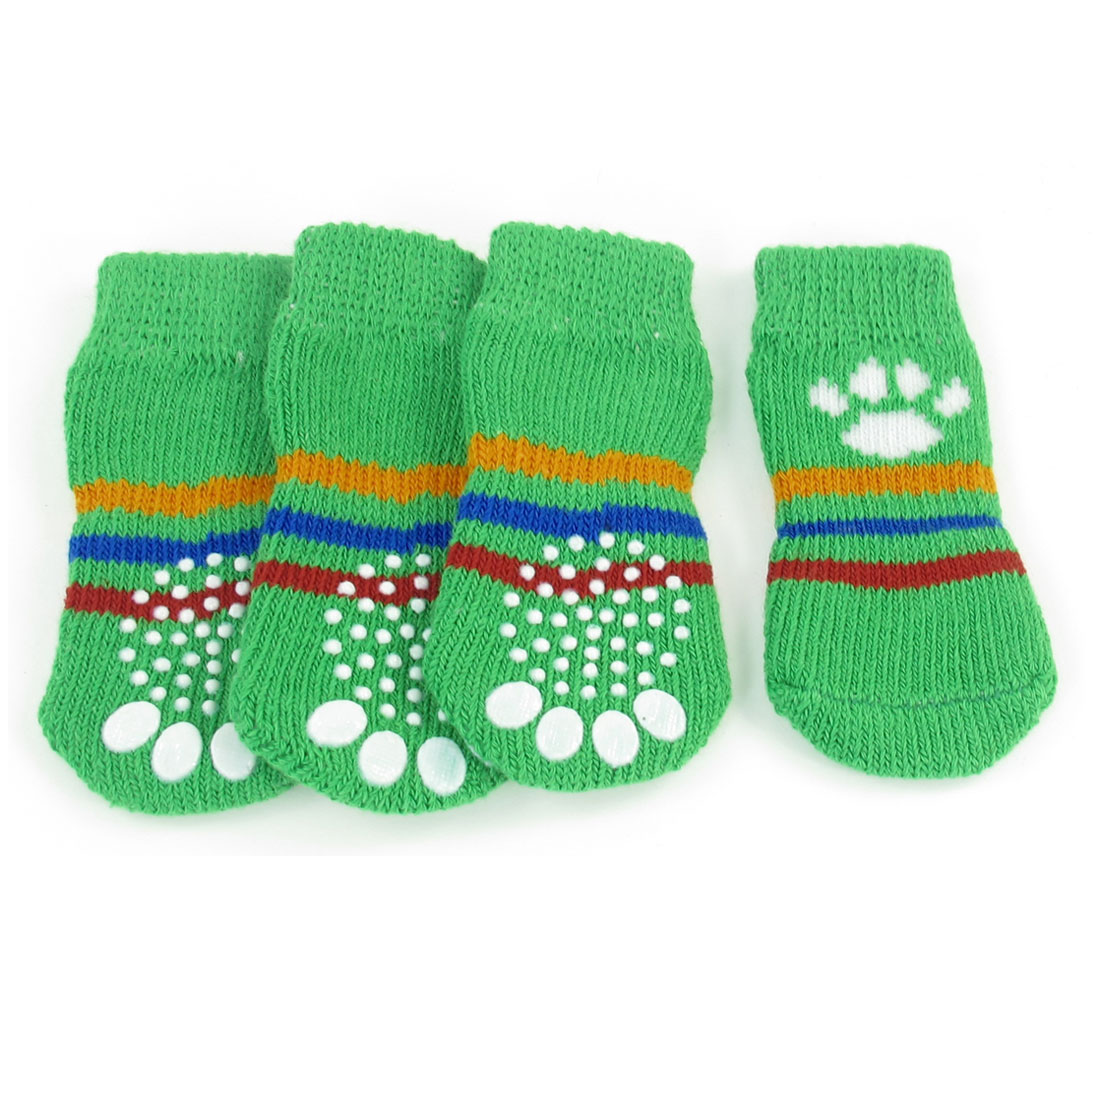 Green Size M Paw Pattern Nonslip Stretchy Knitted Pet Dog Puppy Socks 4 Pcs